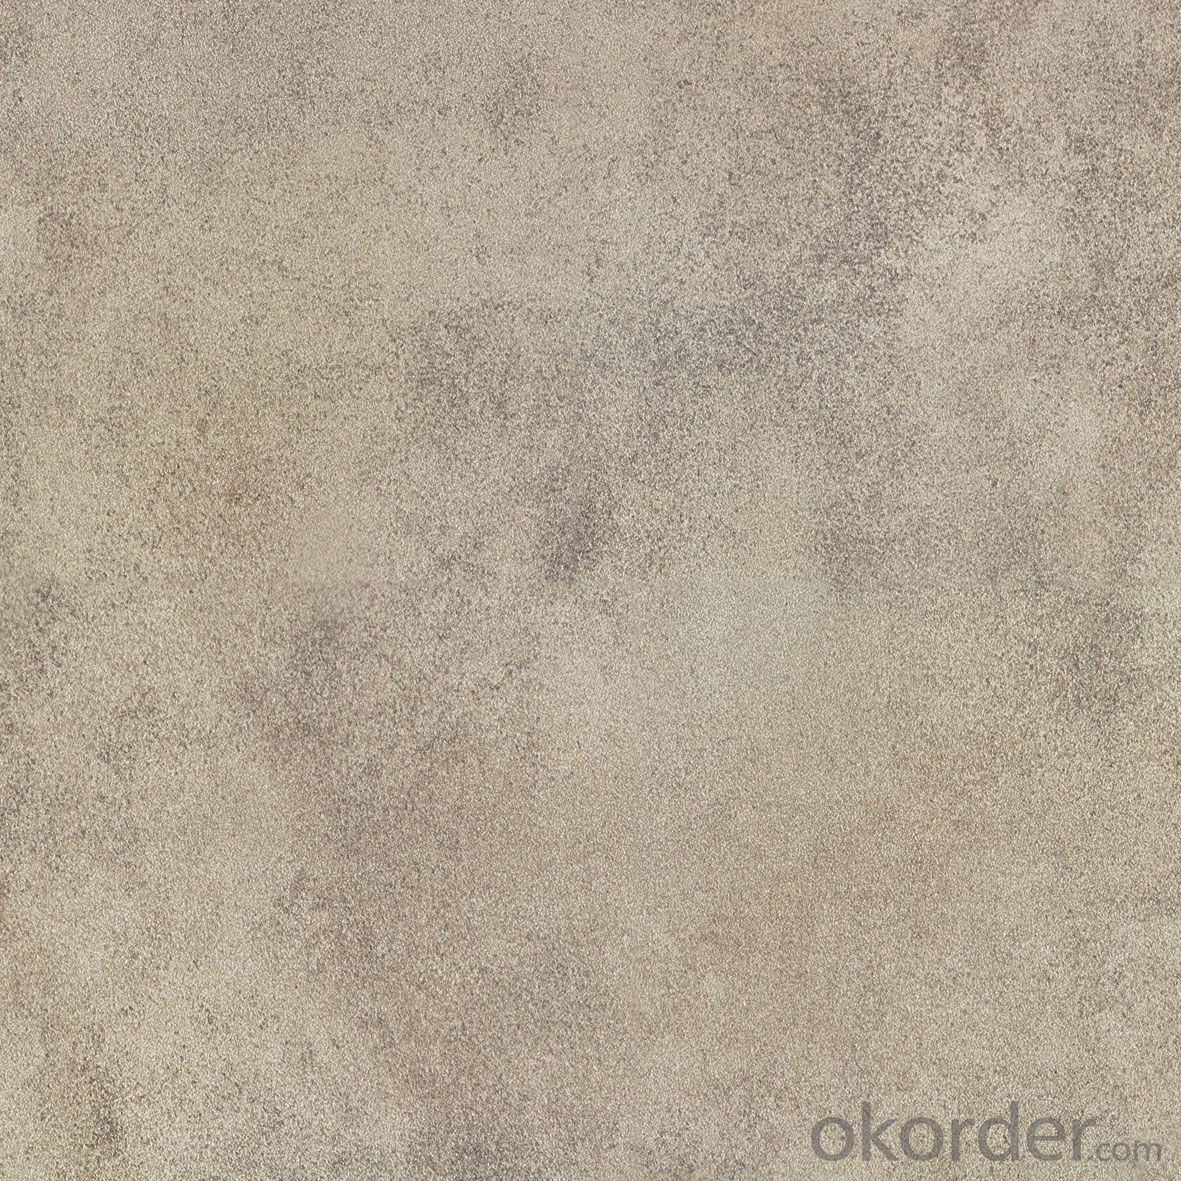 Glazed Porcelain Floor Tile 600x600mm CMAX- S6531